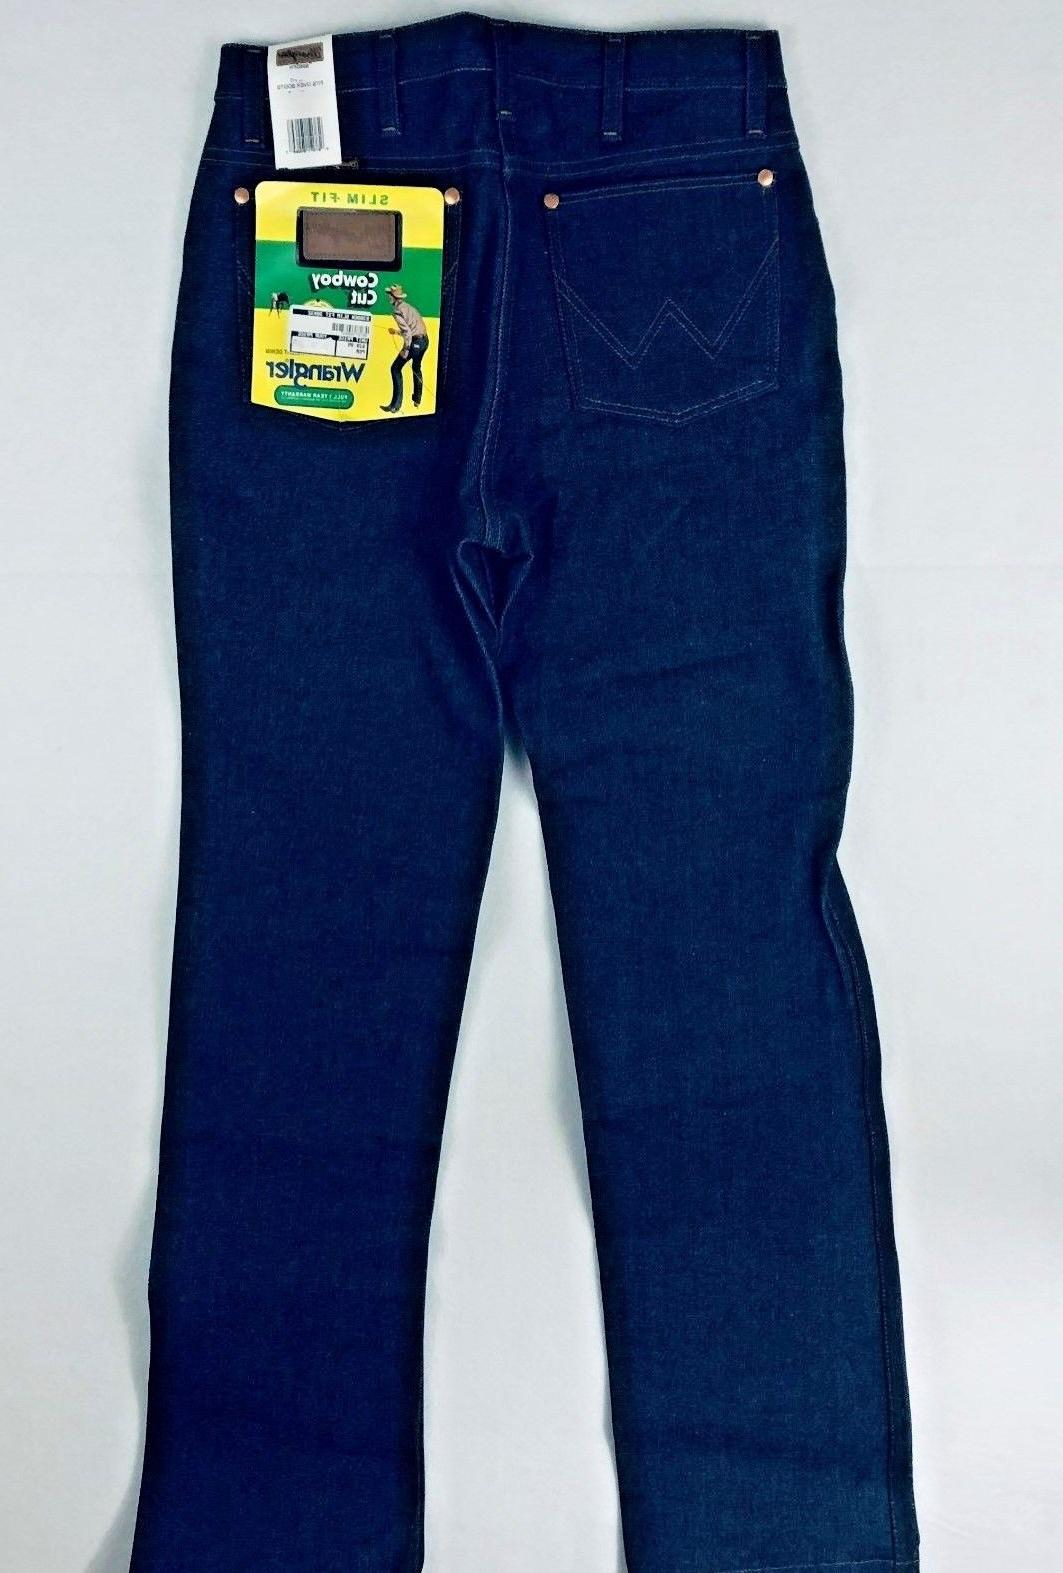 Men's Cut 936 Fit Rigid Denim Medium Blue Bootcut